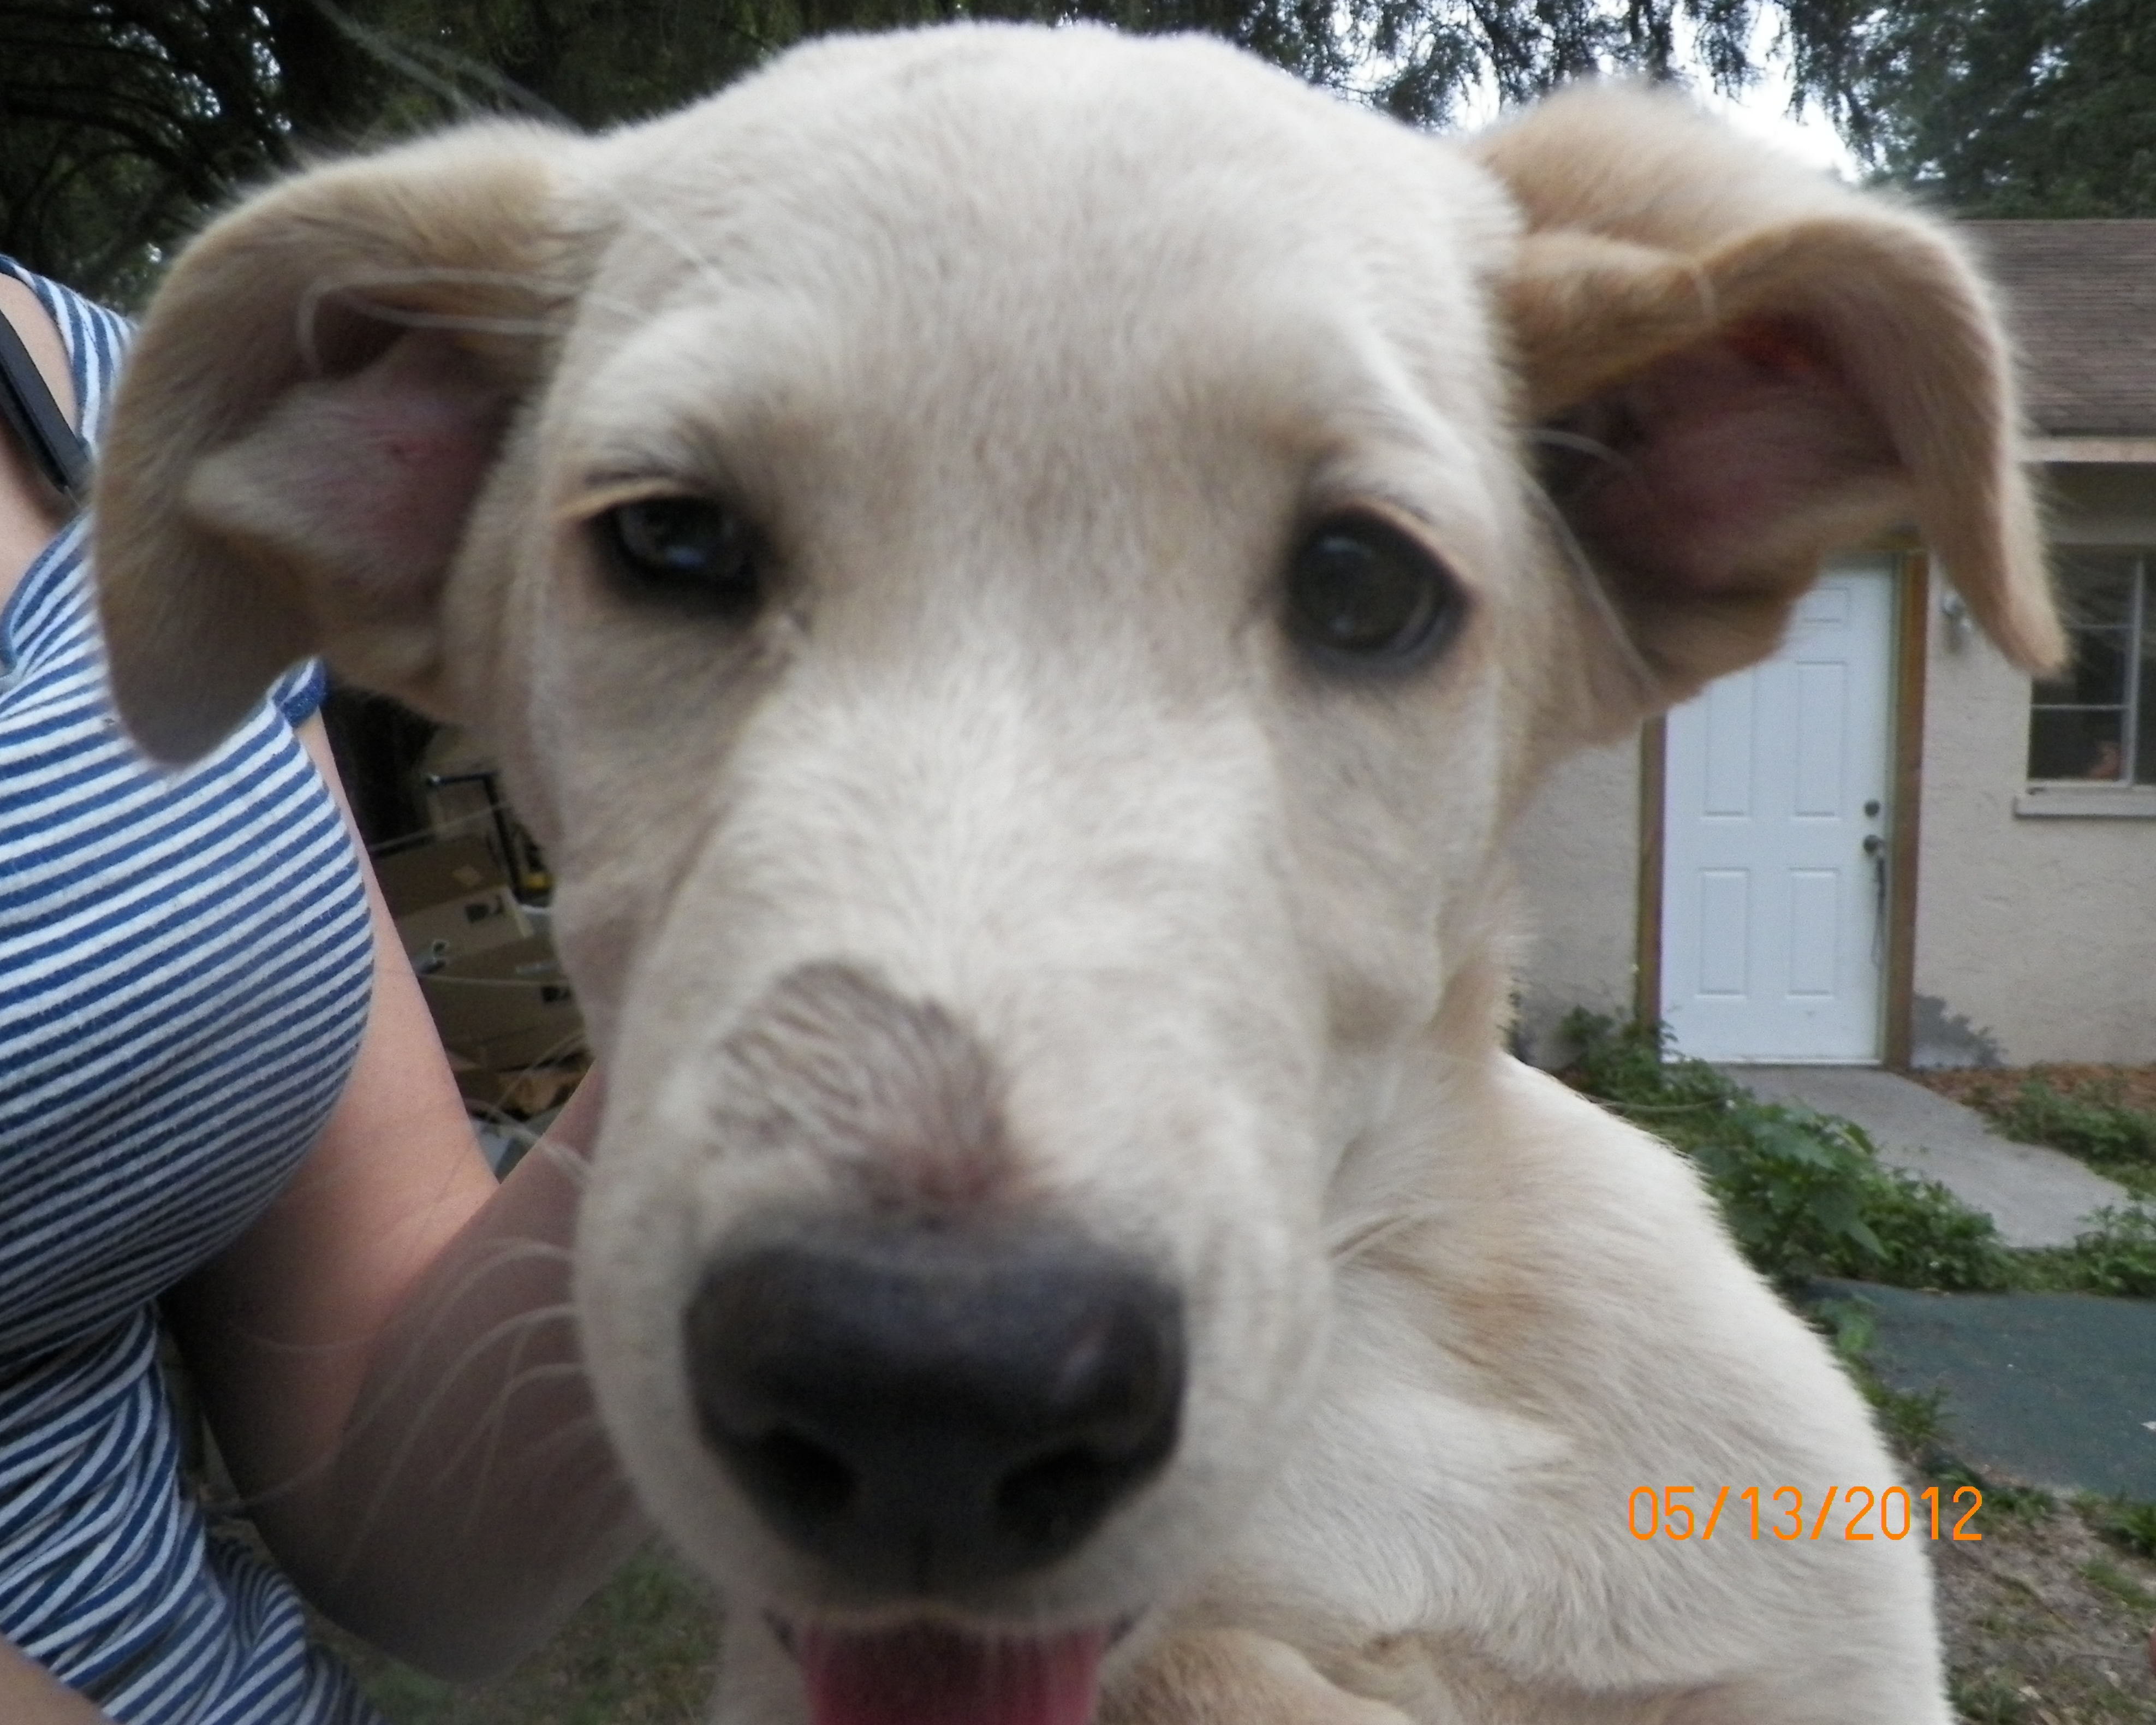 Yellow Lab Puppy Needs a Home!